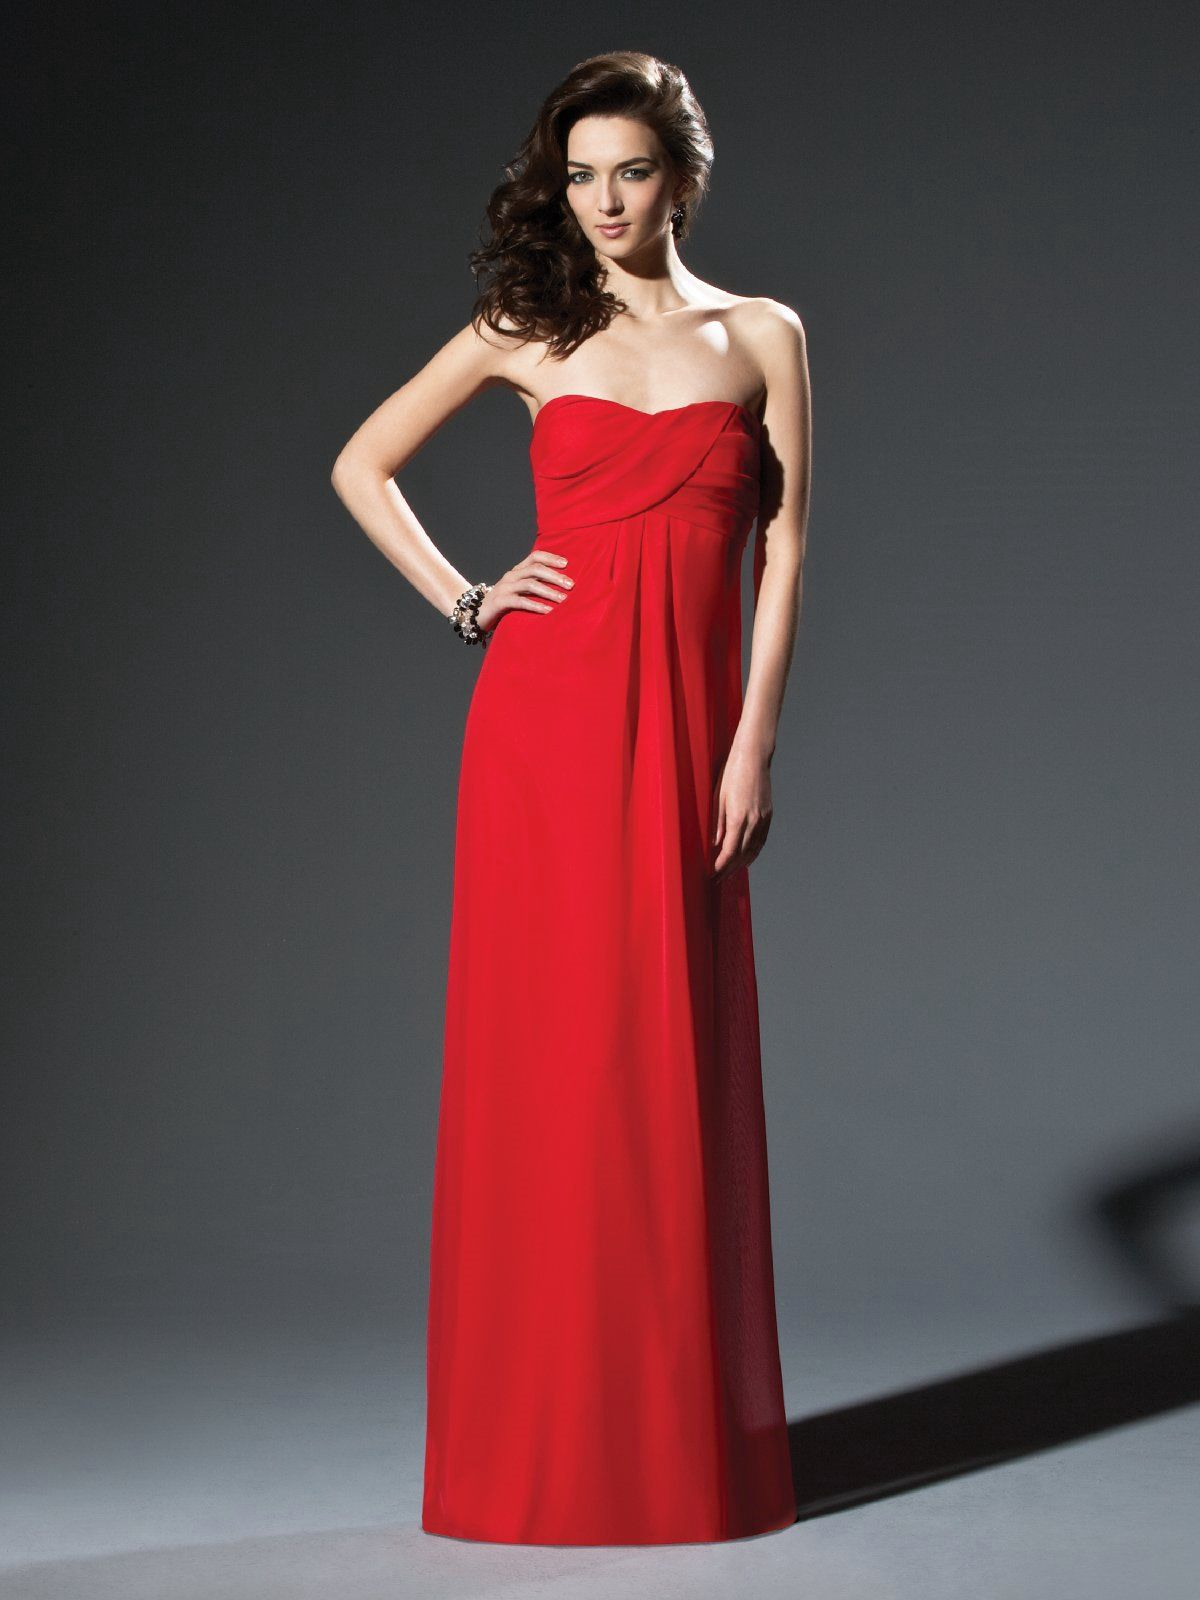 Scarlet red bridesmaid dresses jasmine top 50 scarlet red scarlet red bridesmaid dresses jasmine ombrellifo Choice Image